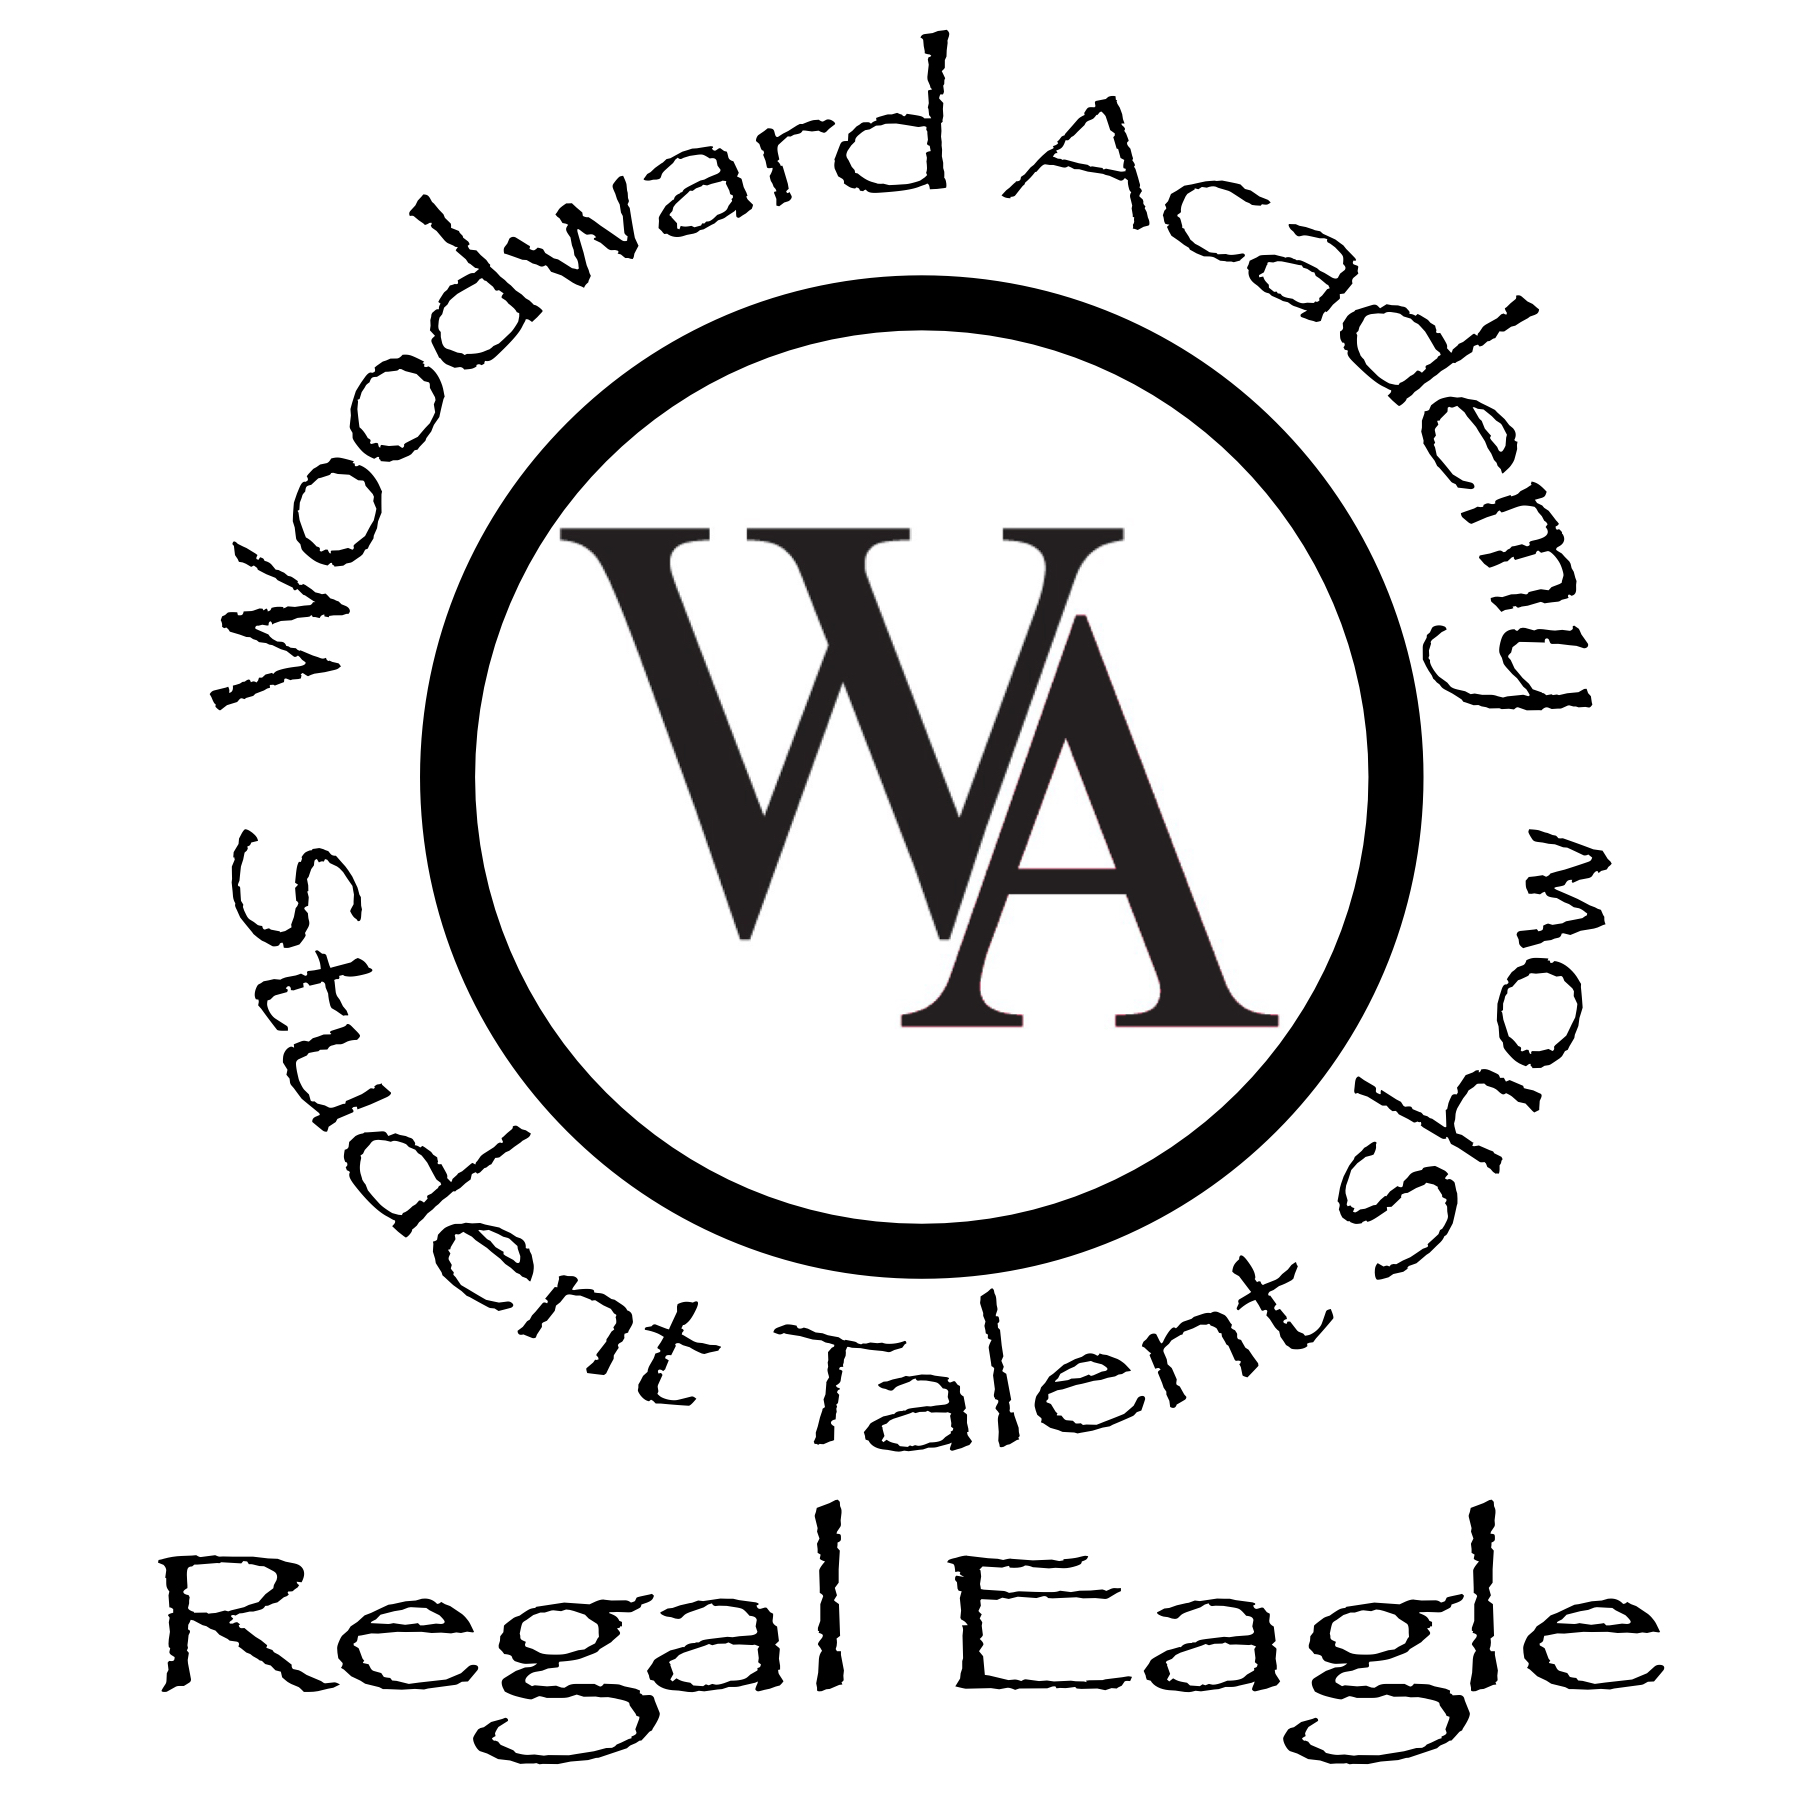 US Regal Eagle Talent Show